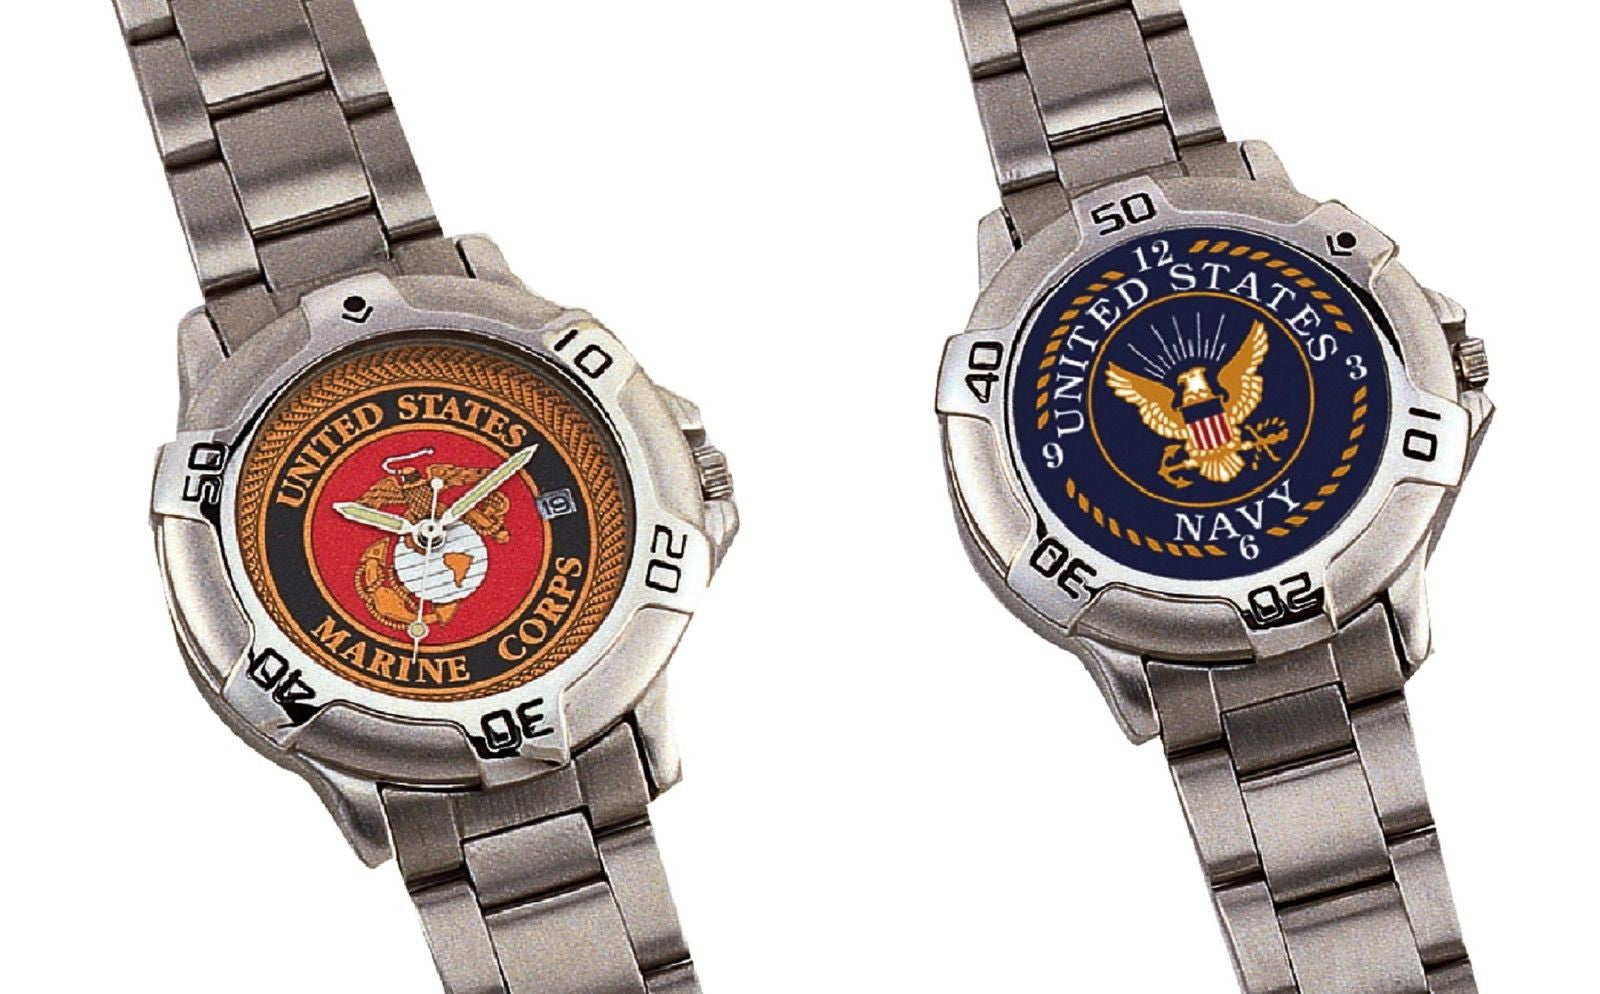 Marine corps or us navy logo quartz watch usmc military wristwatch wat grunt force for Marine watches